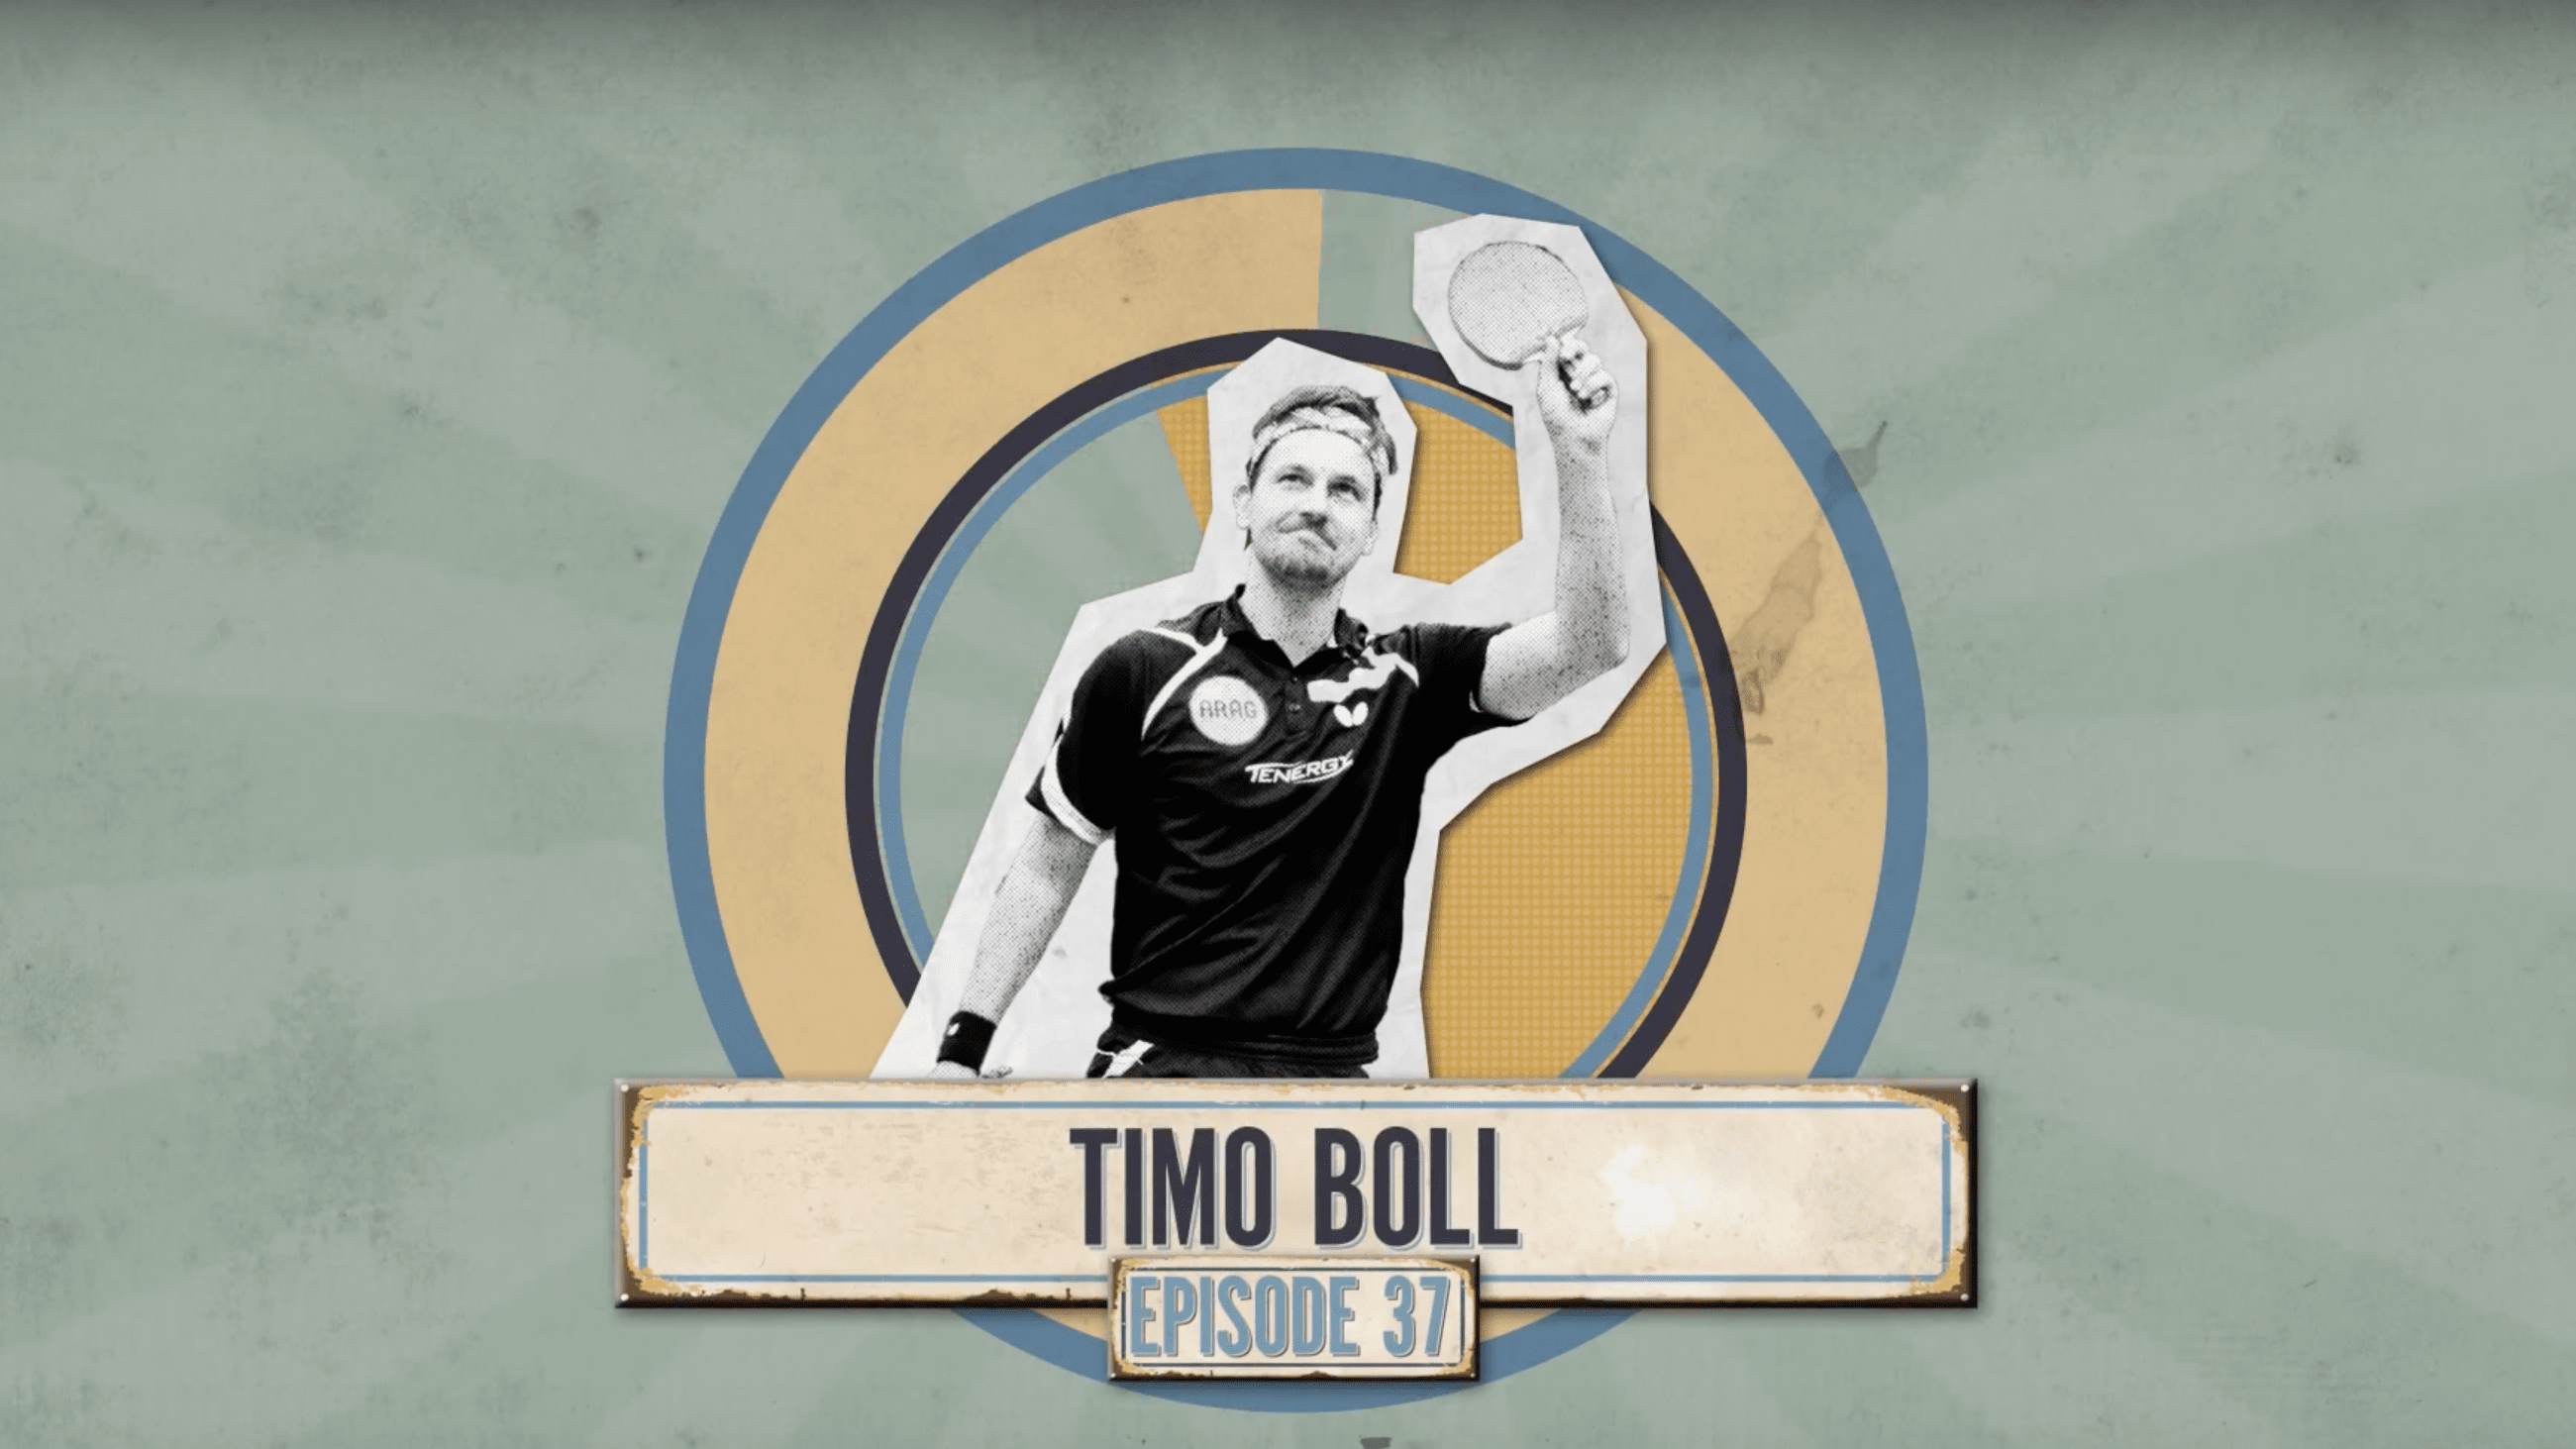 Timo Boll takes Ask Pro Anything challenge